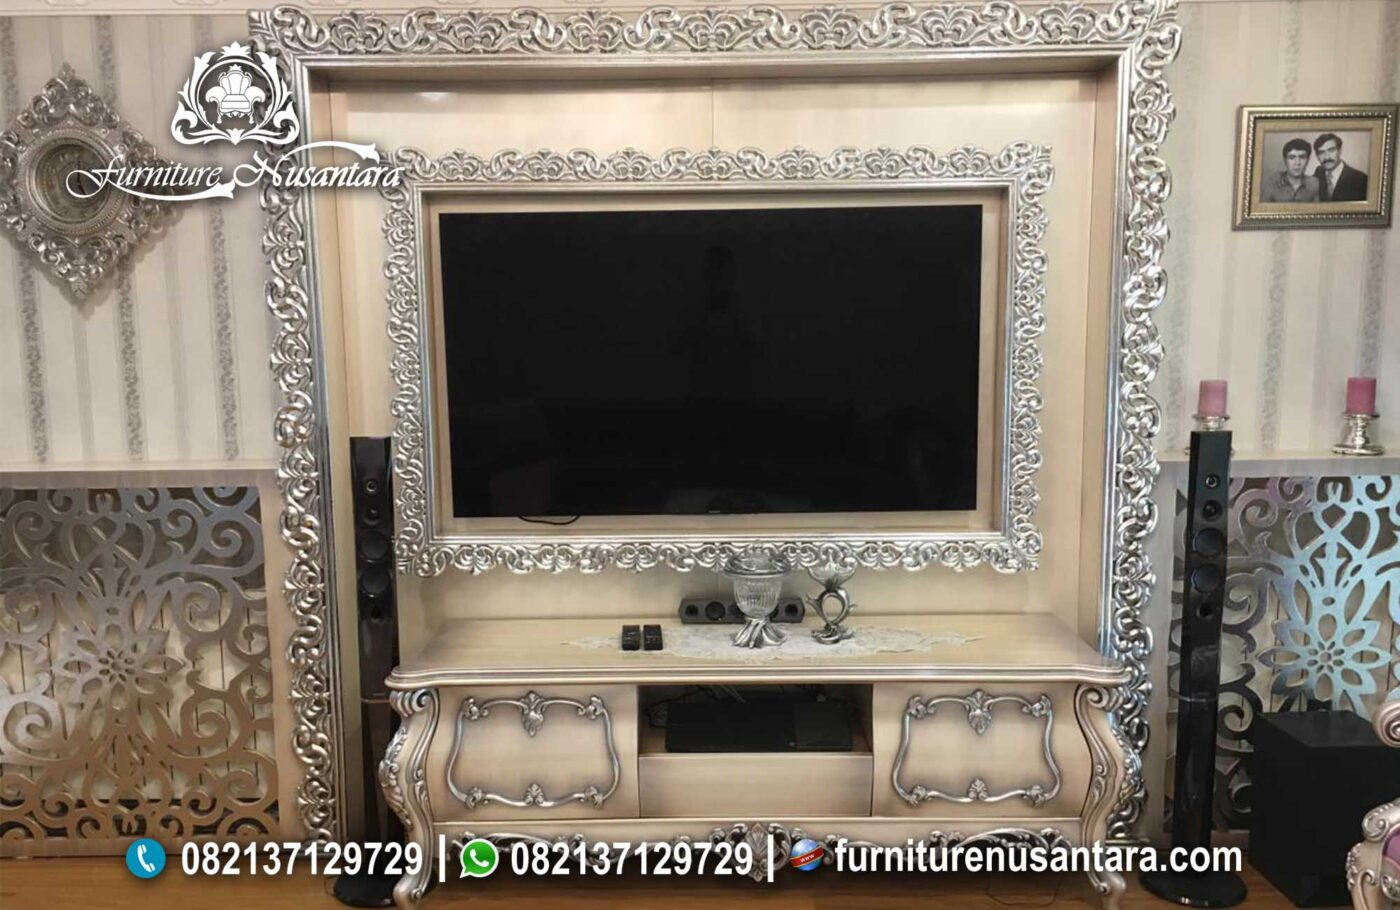 Jual Backdrop TV Ukir Jepara Cream Silver BTV-01